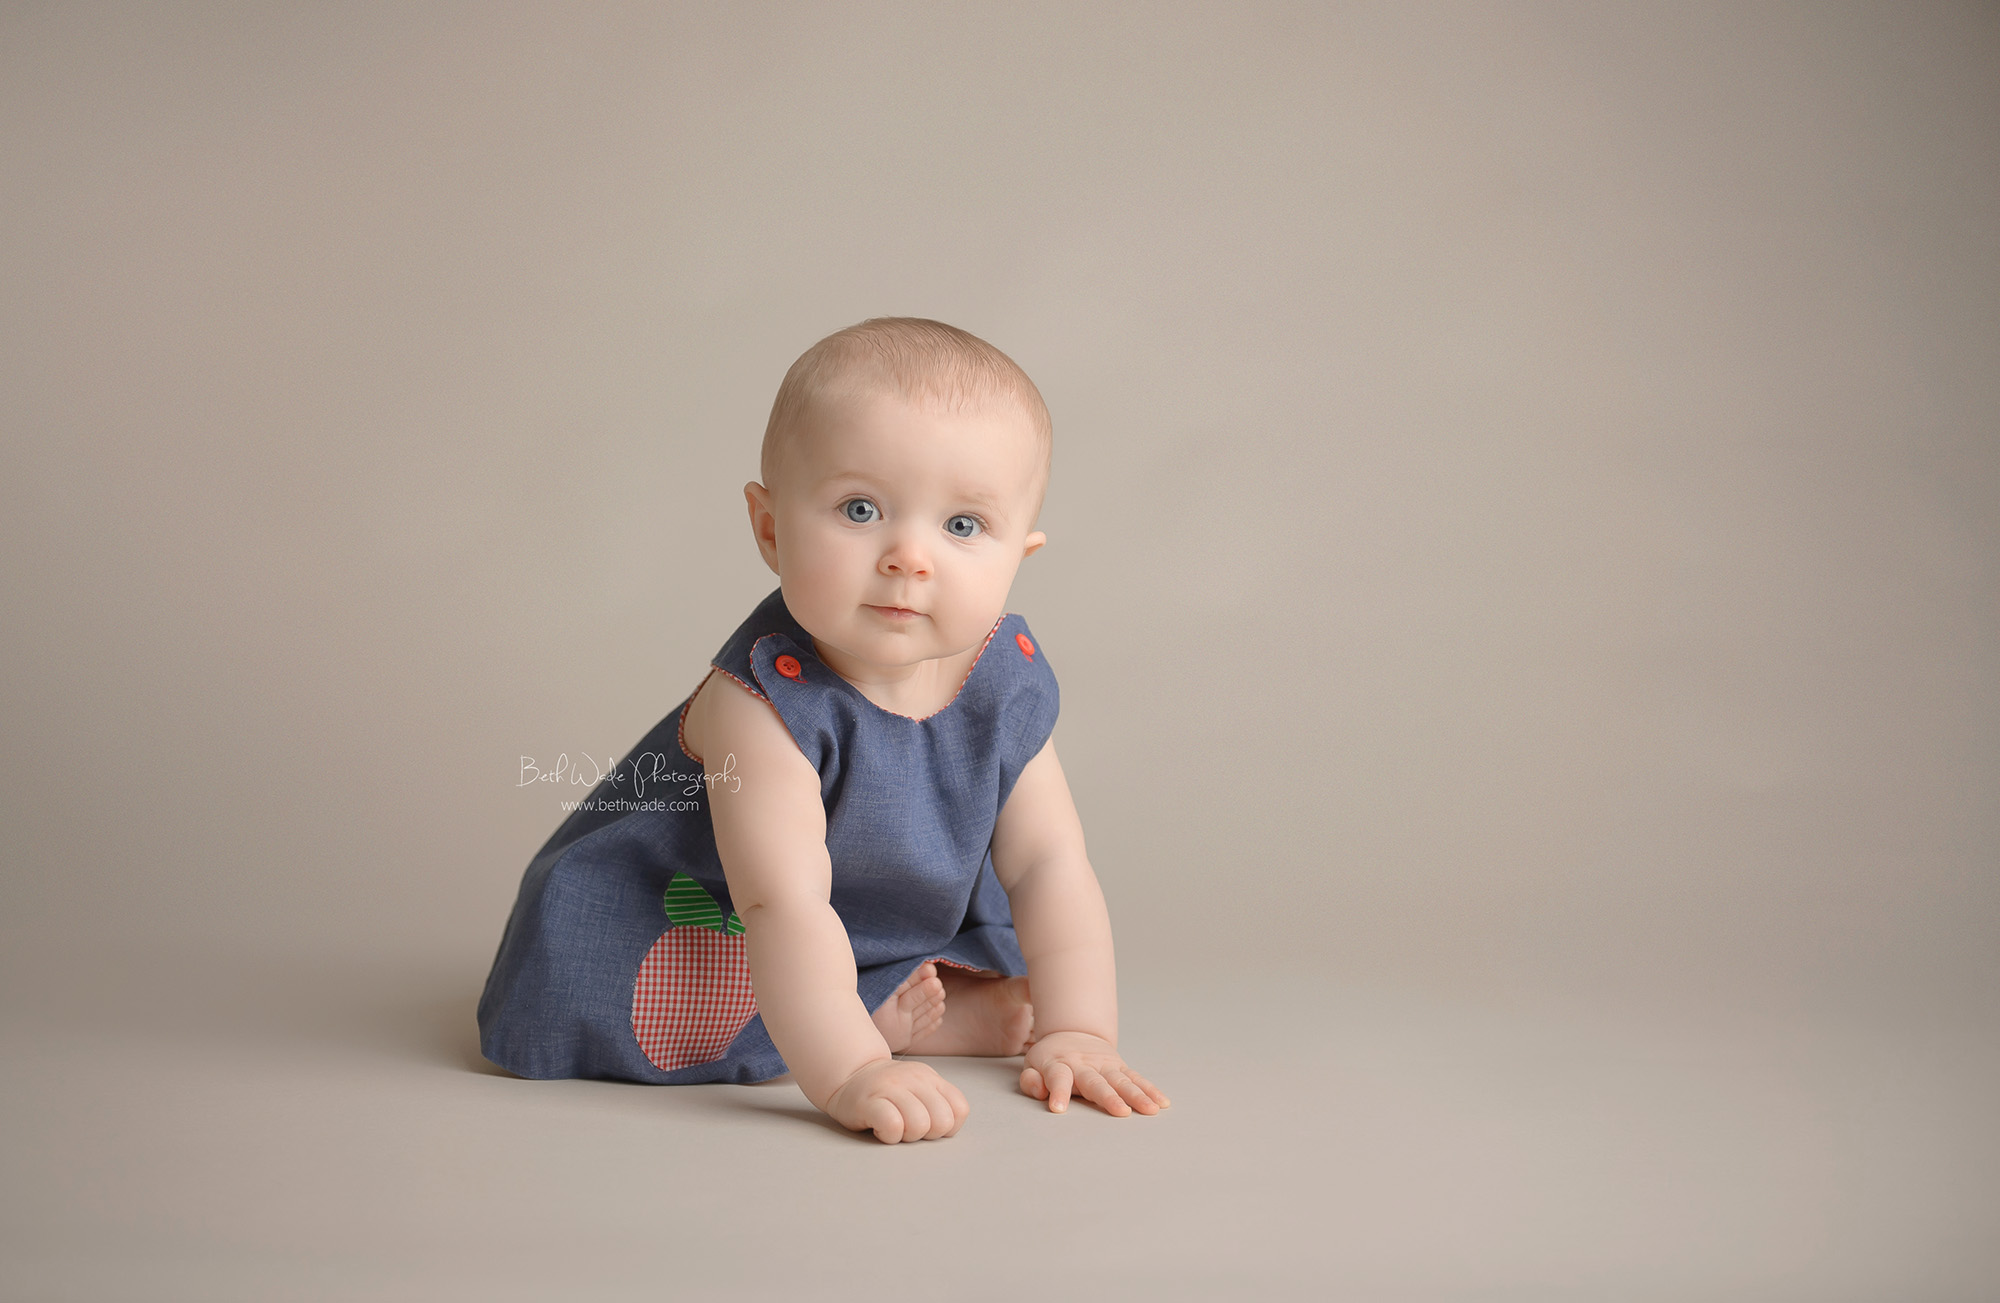 sweet alice jane ~ our girl is 7 months old {lake wylie baby photographer}